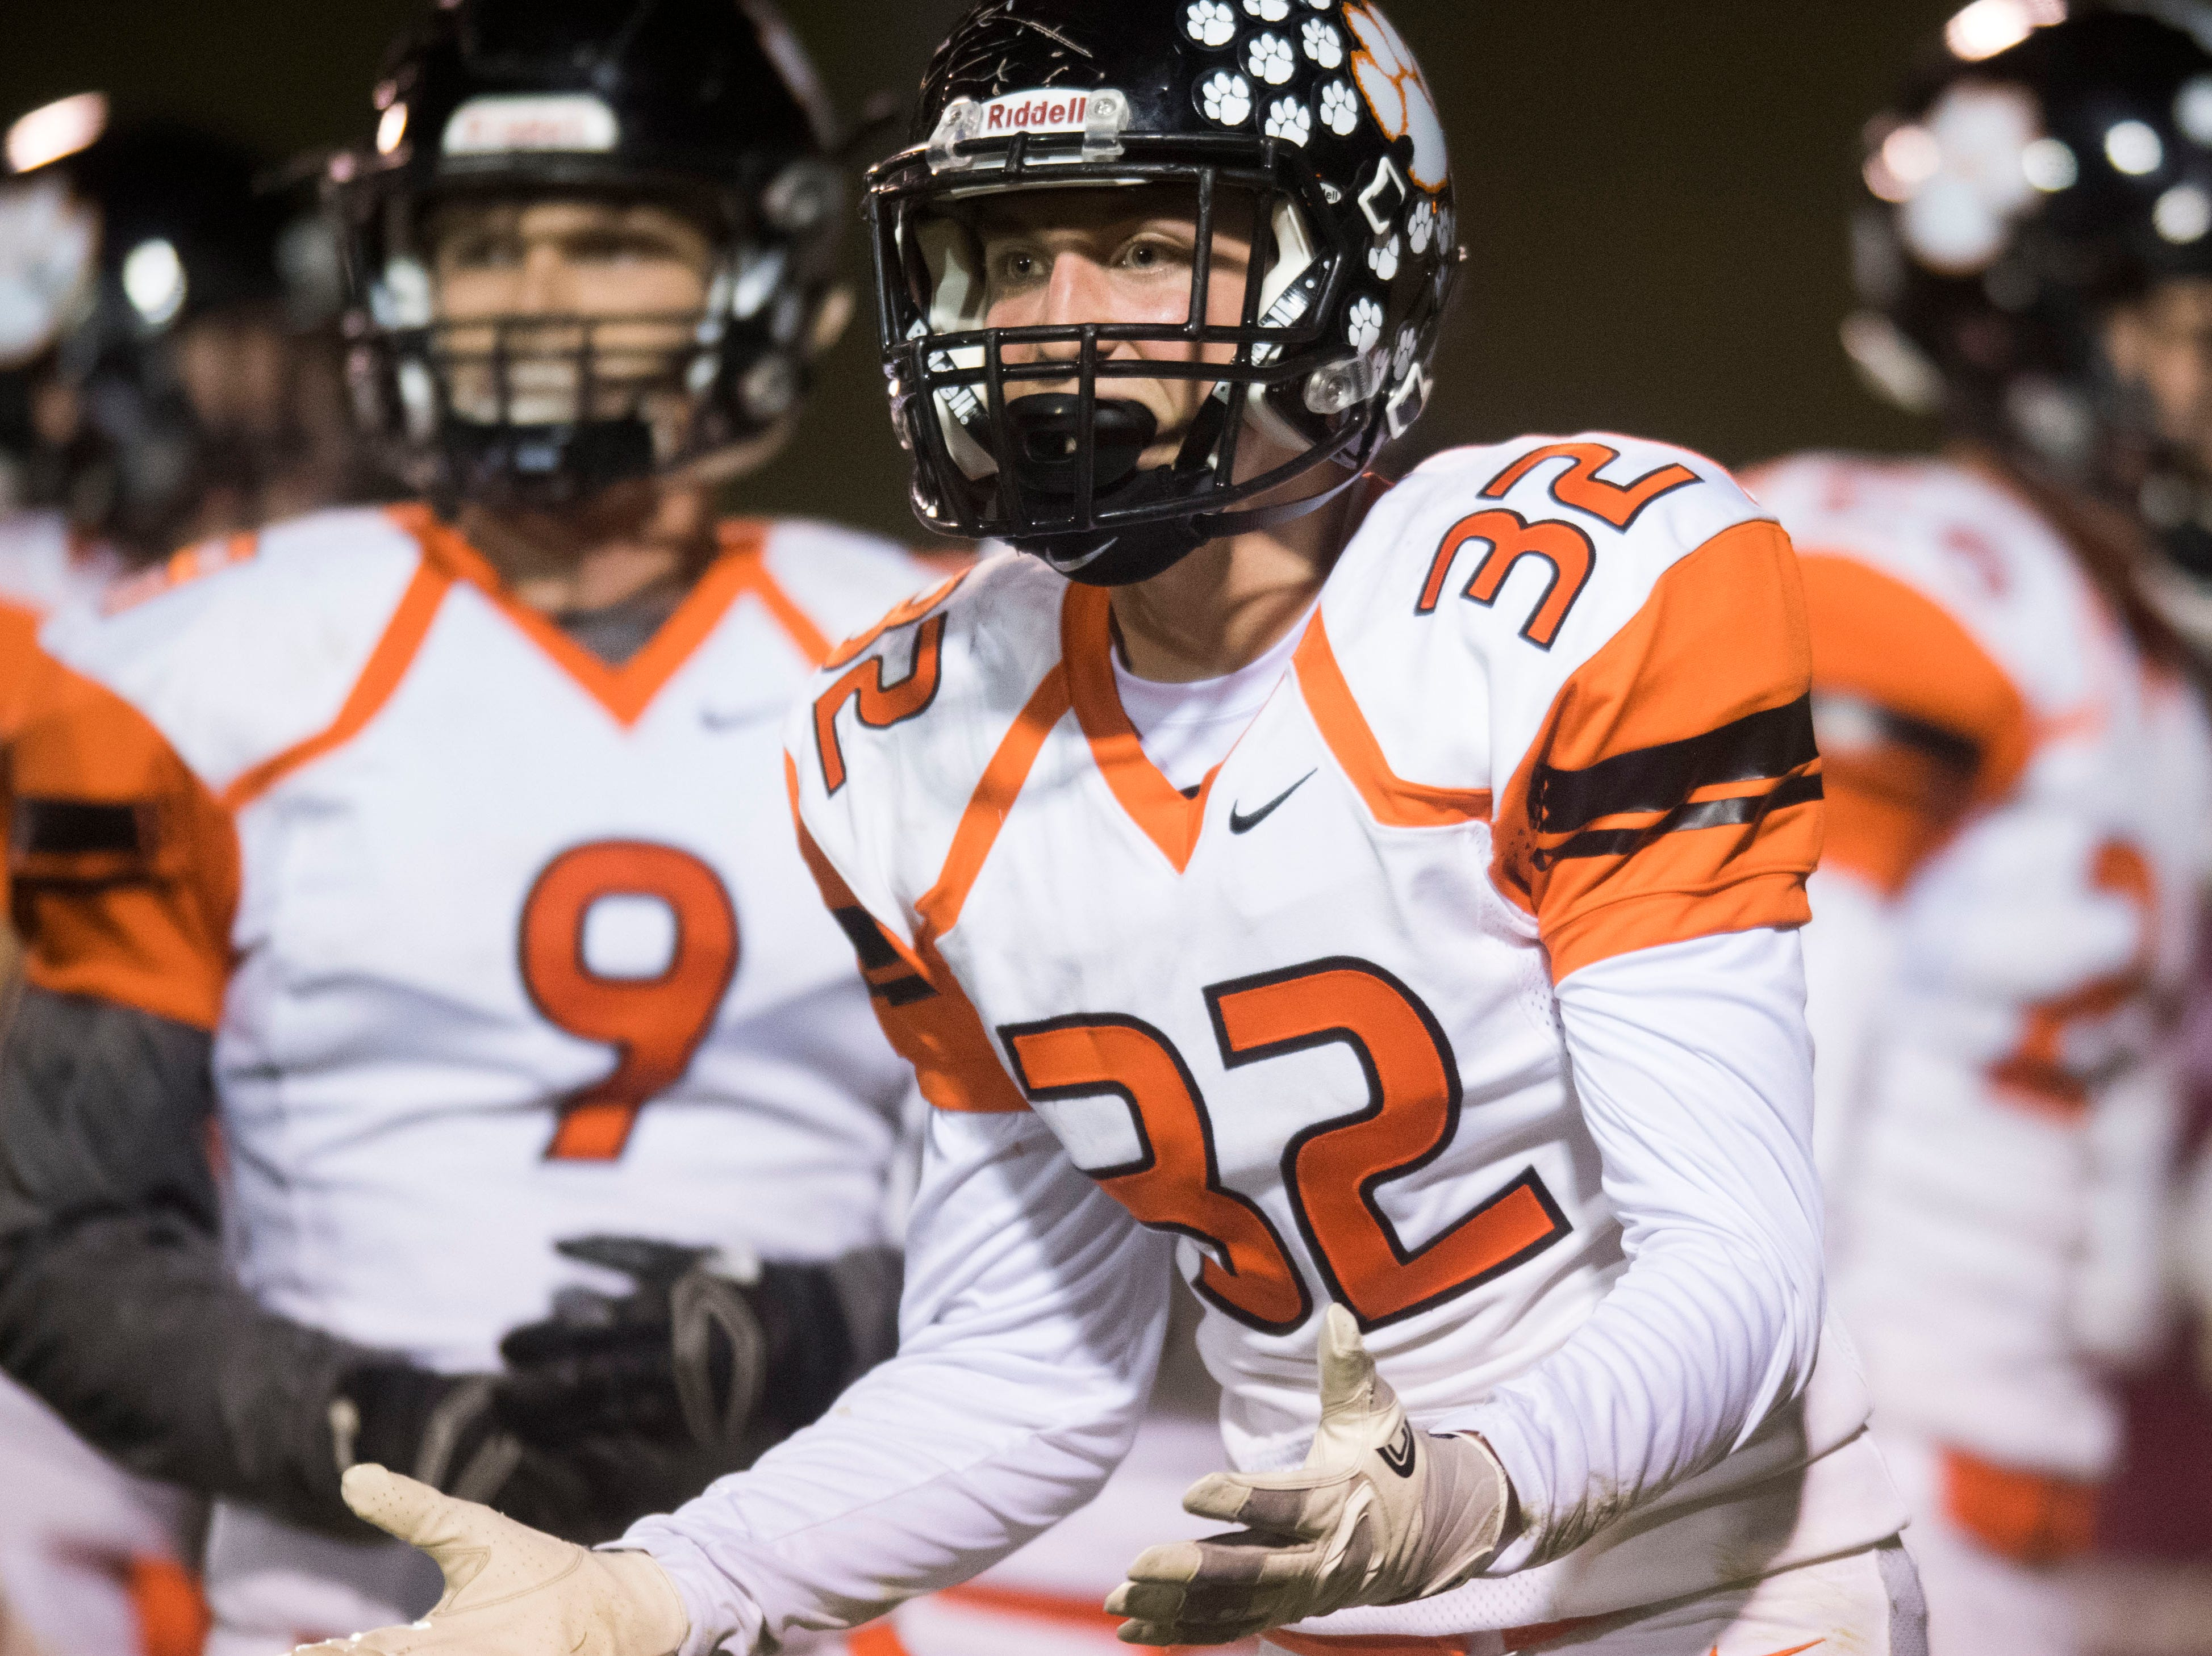 Powell's Hayden Epperson (32) disagrees with a call during a game between Oak Ridge and Powell at Oak Ridge Friday, Oct. 19, 2018. Oak Ridge defeated Powell 28-21.